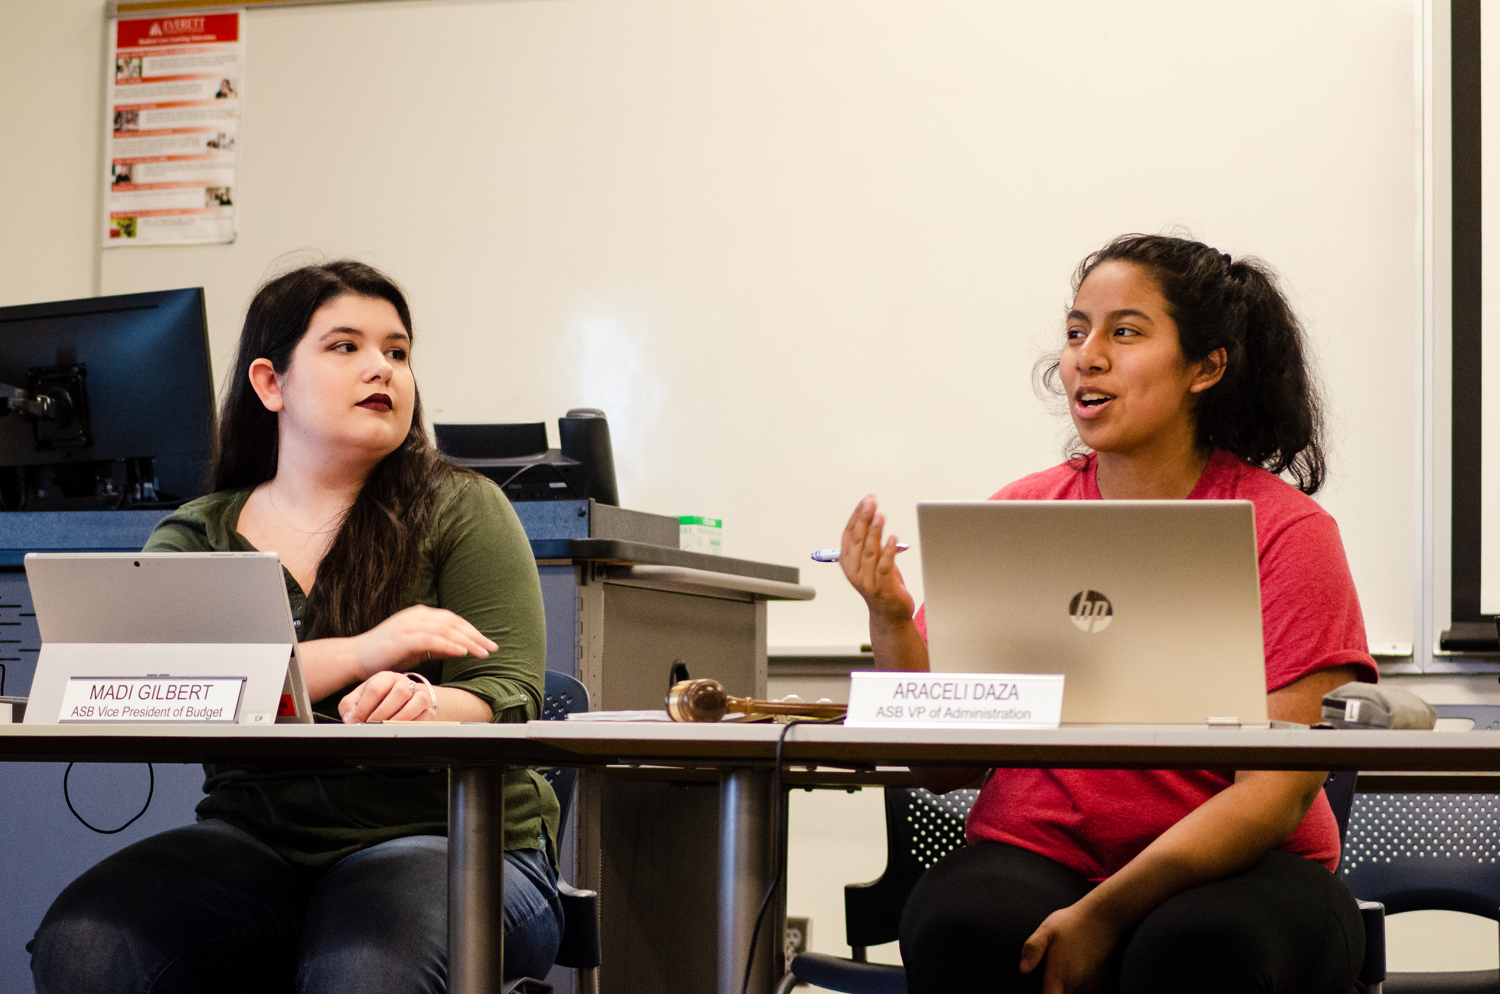 ASB VP of Budget Madison Gilbert and Vice President of Administration Araceli Daza in discussion at the ASB Senate meeting. The Senate voted unanimously to approve the budget increase, which would largely go toward raising minimum wage of student workers.